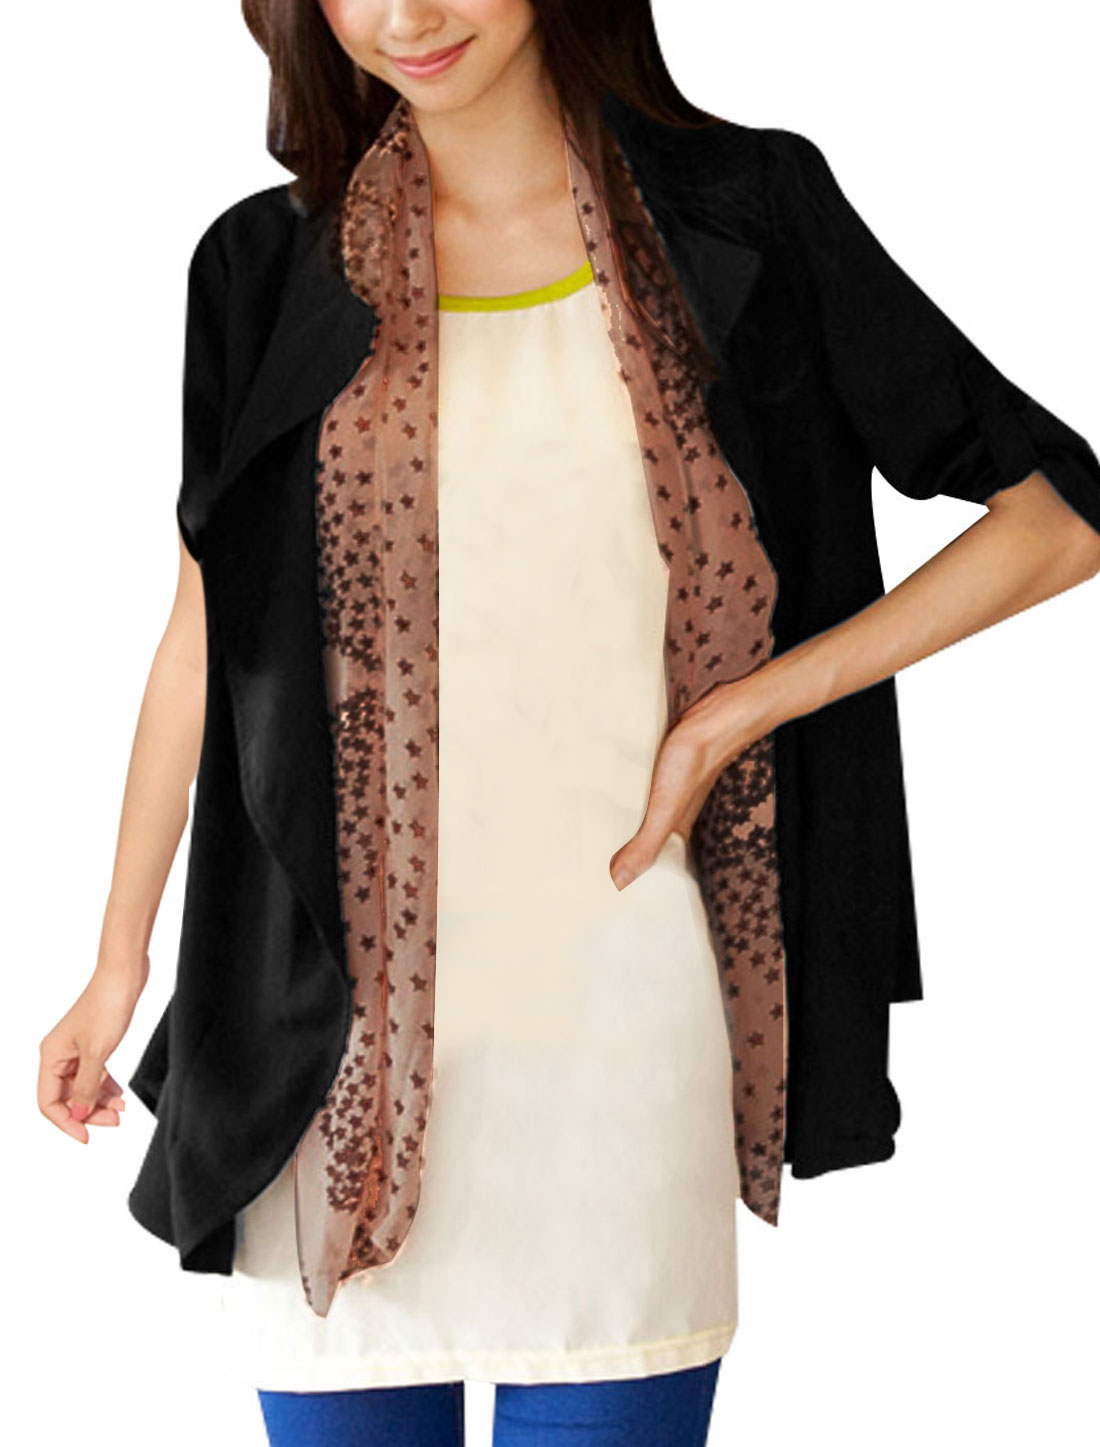 Women Front Opening 3/4 Roll Up Sleeves Cardigan w Scarf Black XS